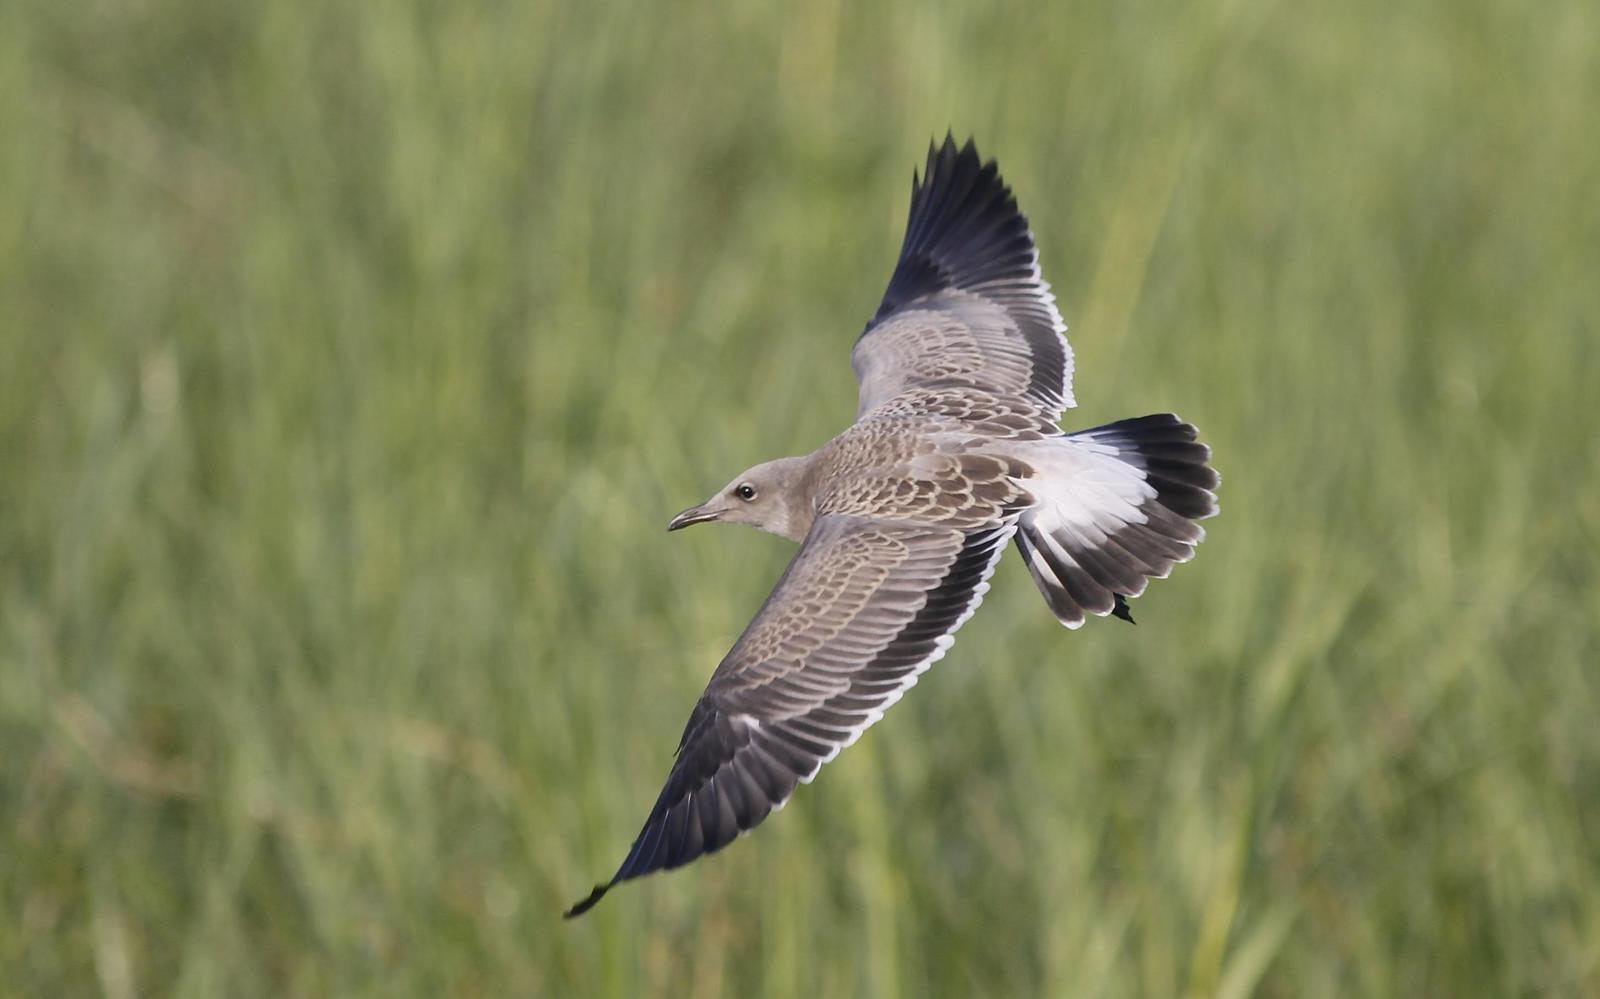 Laughing Gull Photo by Tim Schreckengost